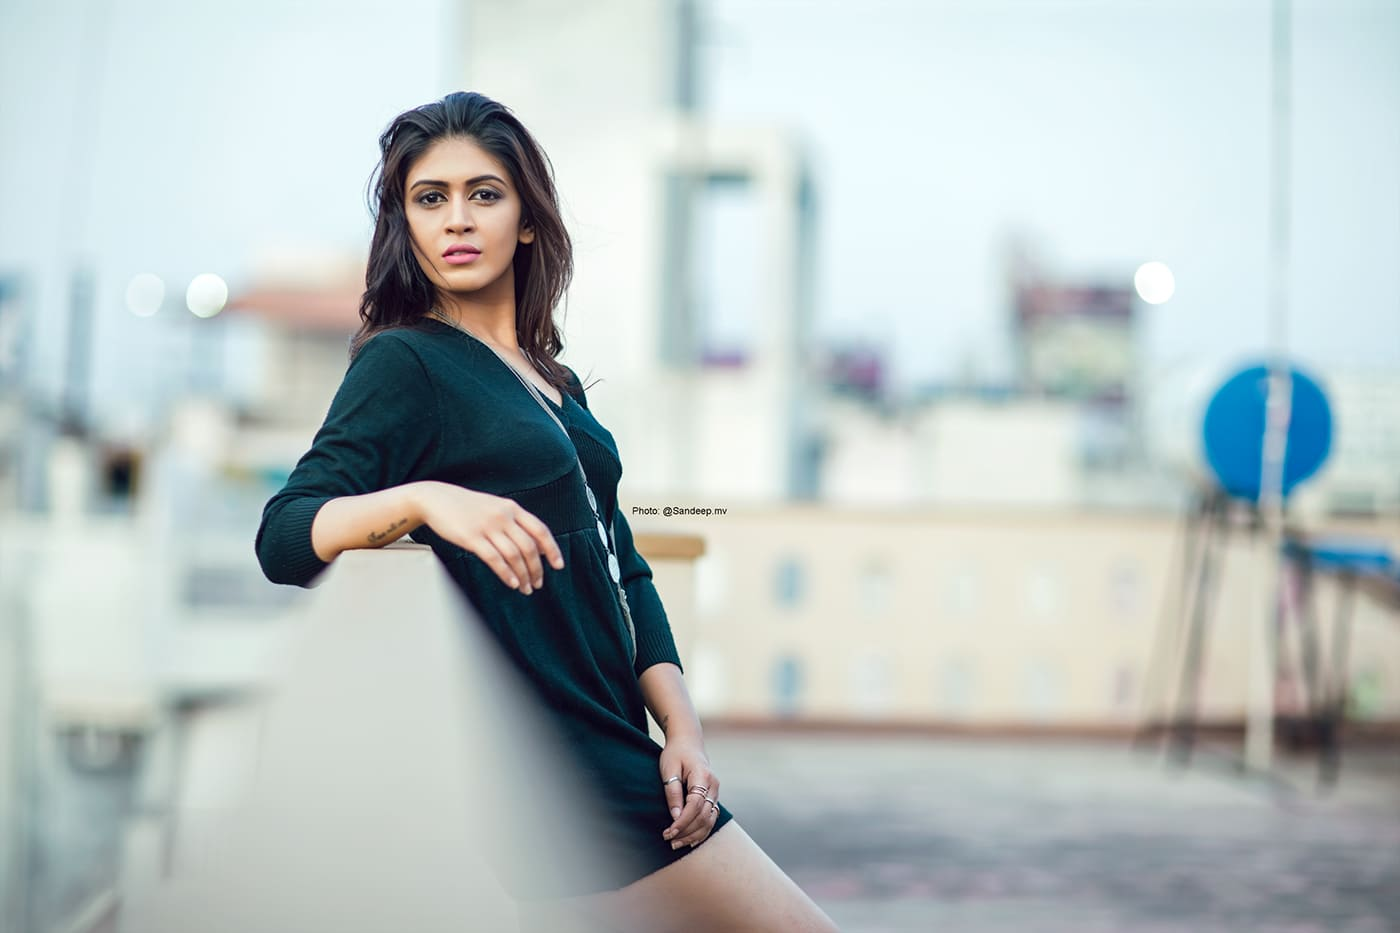 Raksha Somashekhar: I Did Not Want To Debut With A Film In Which I Only Had To Look Pretty